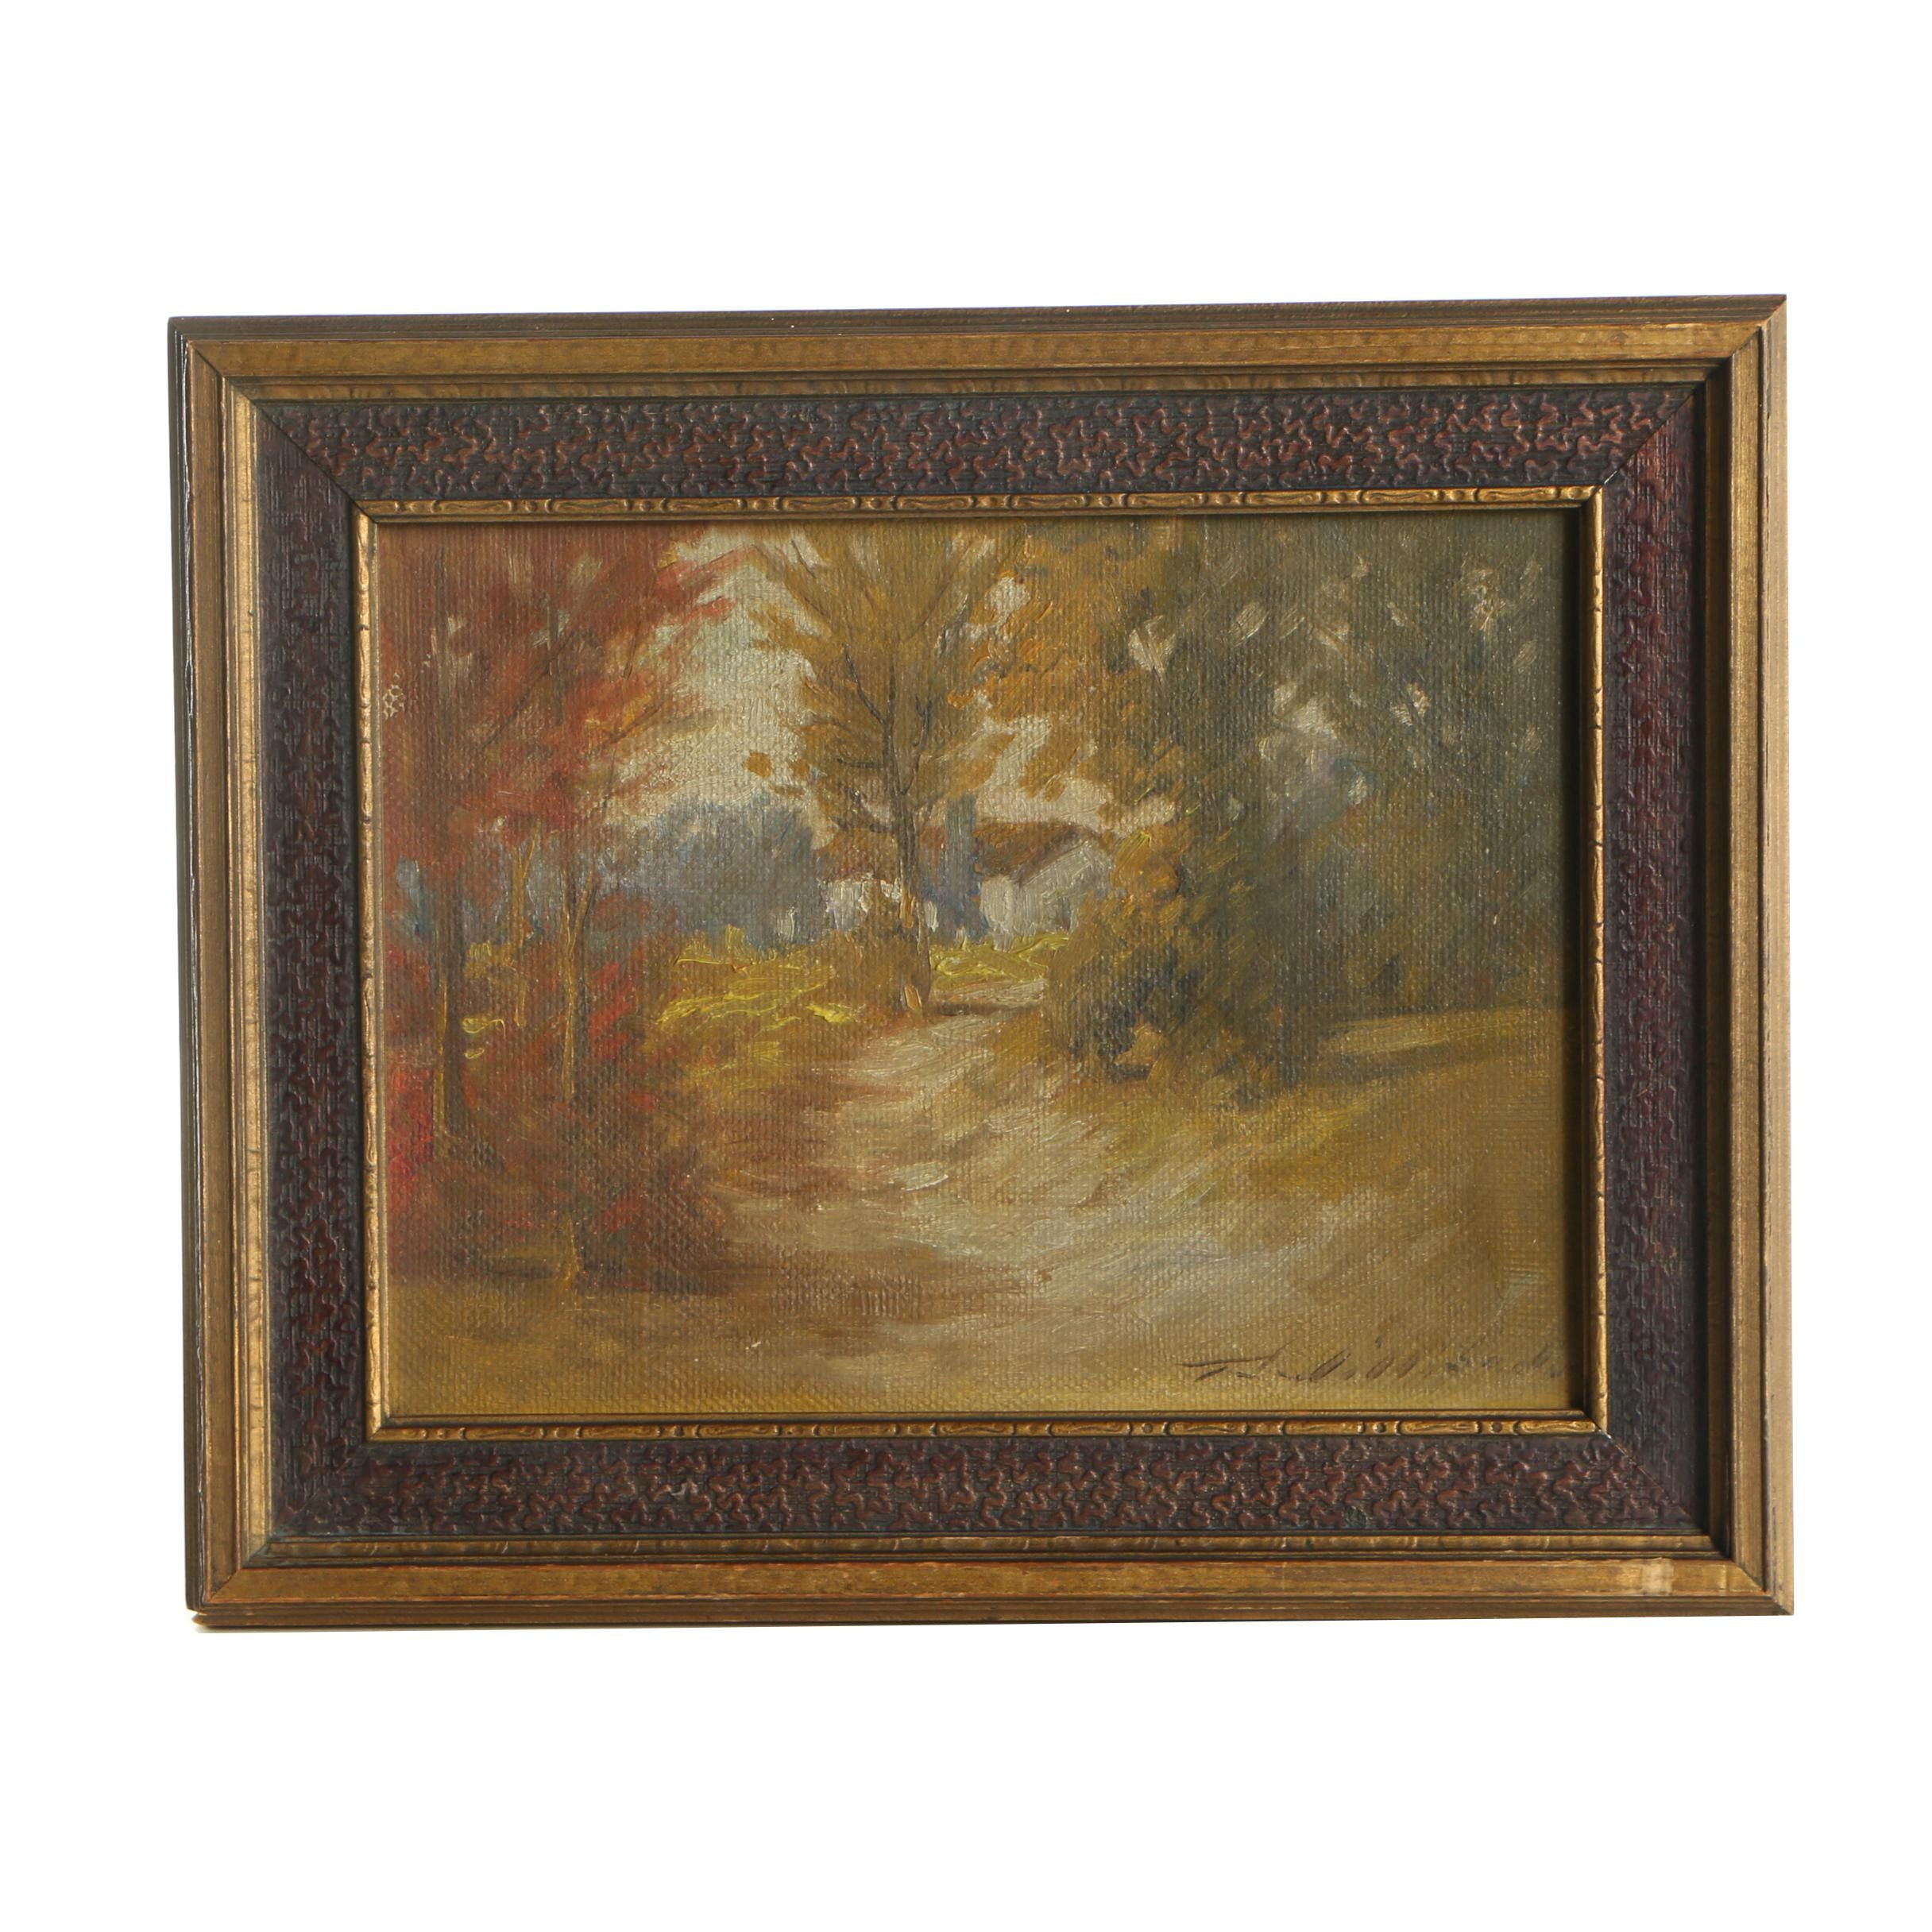 Thomas Willison Oil Painting of an Autumnal Landscape